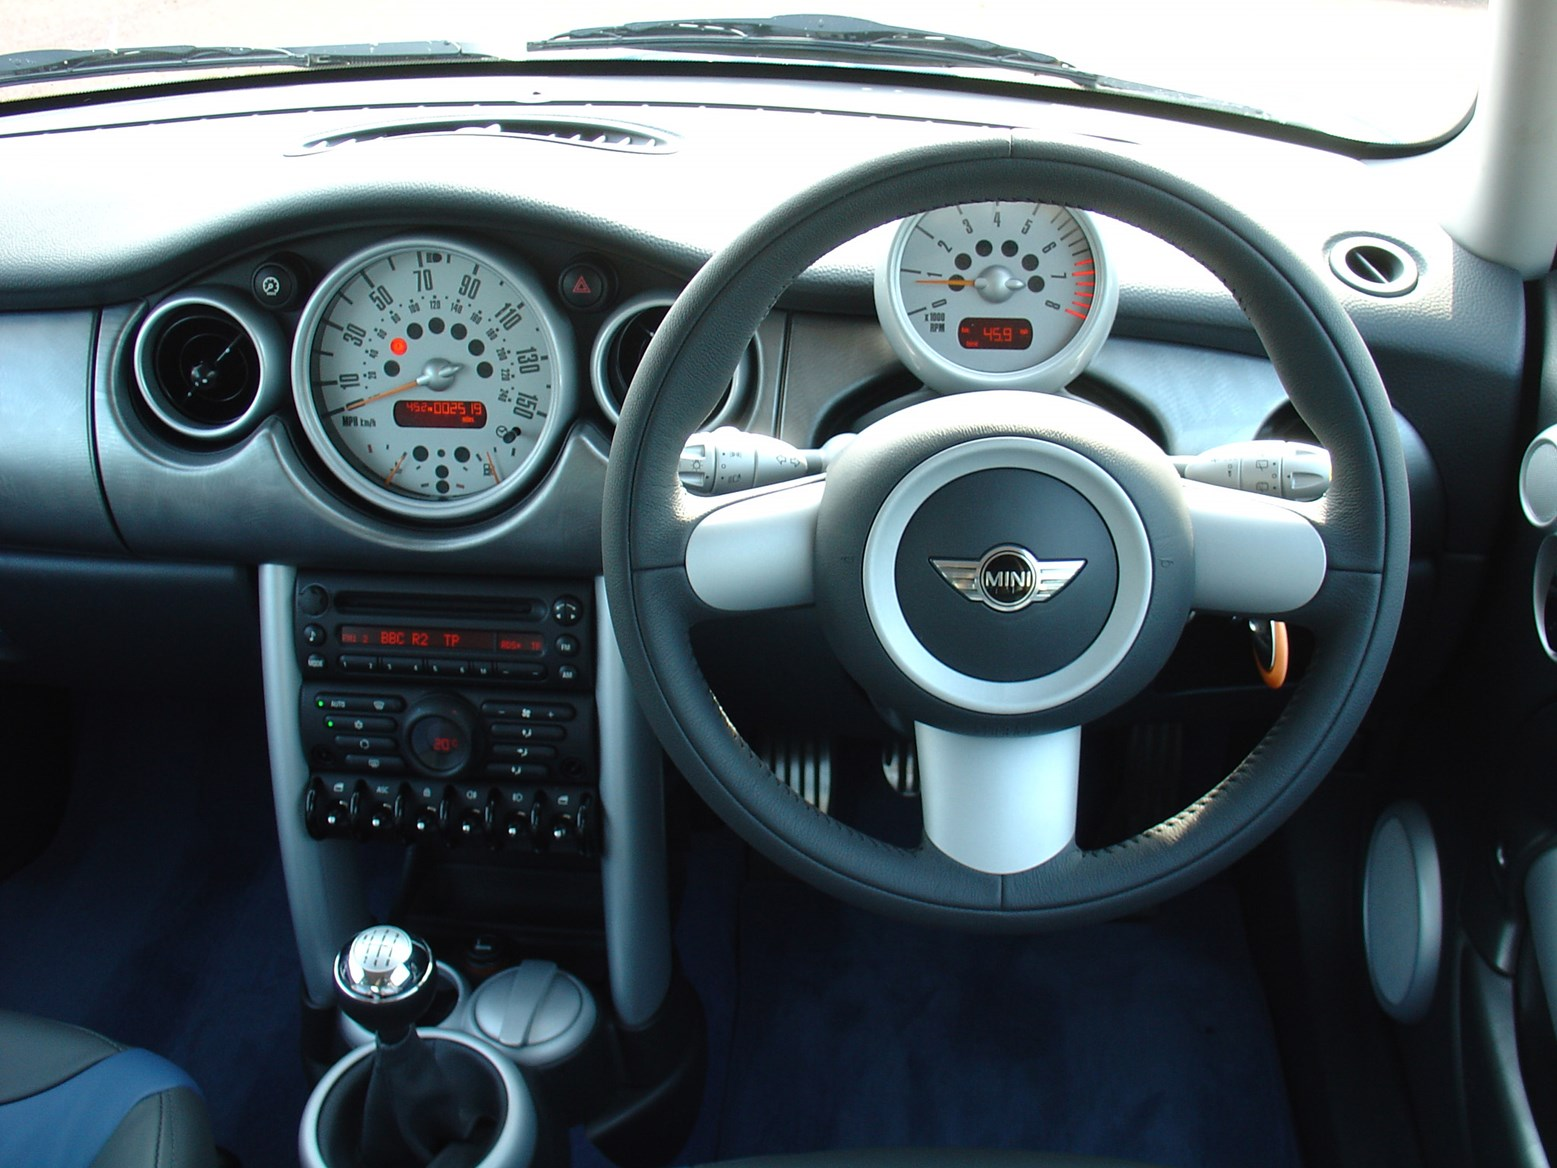 MINI Cooper S Hatchback (2002 - 2006) Features, Equipment and ...